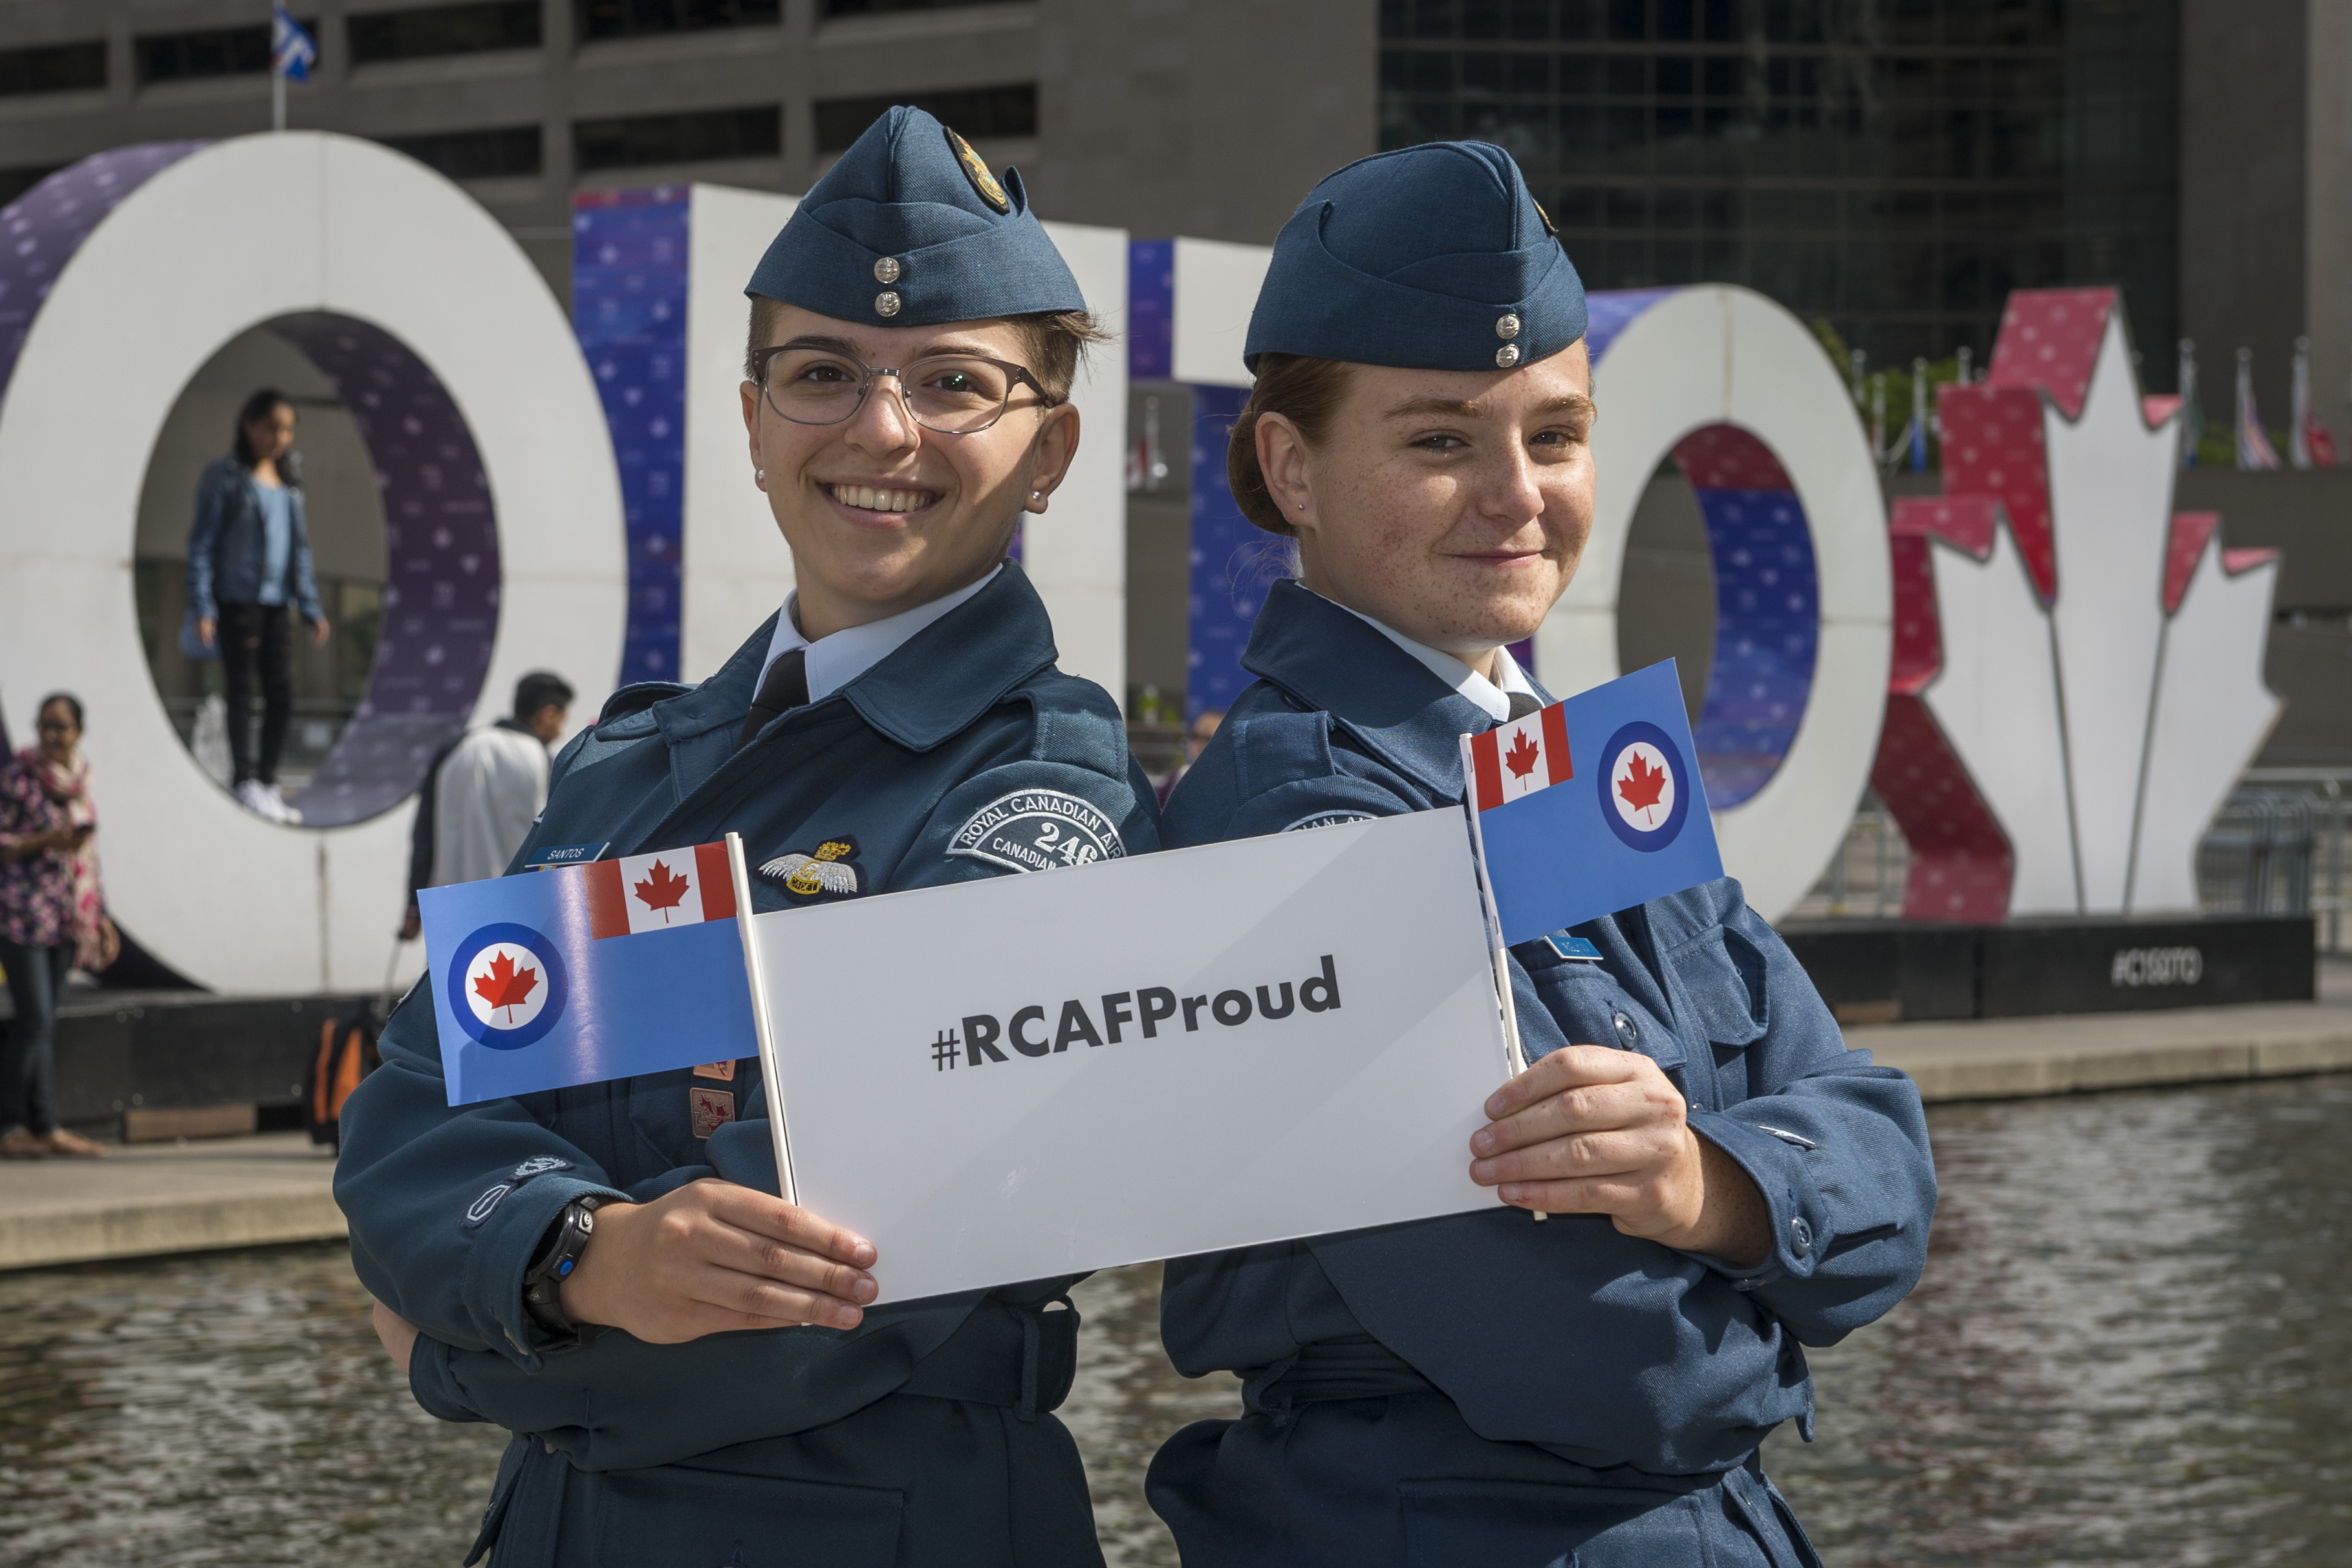 On August 31, 2017, Royal Canadian Air Force Cadets celebrate at the TORONTO sign at Nathan Phillips Square to mark the presentation of new Colours to the RCAF on September 1, also at Nathan Phillips Square. #RCAFProud PHOTO: Corporal Alana Morin, FA03-2017-0109-027